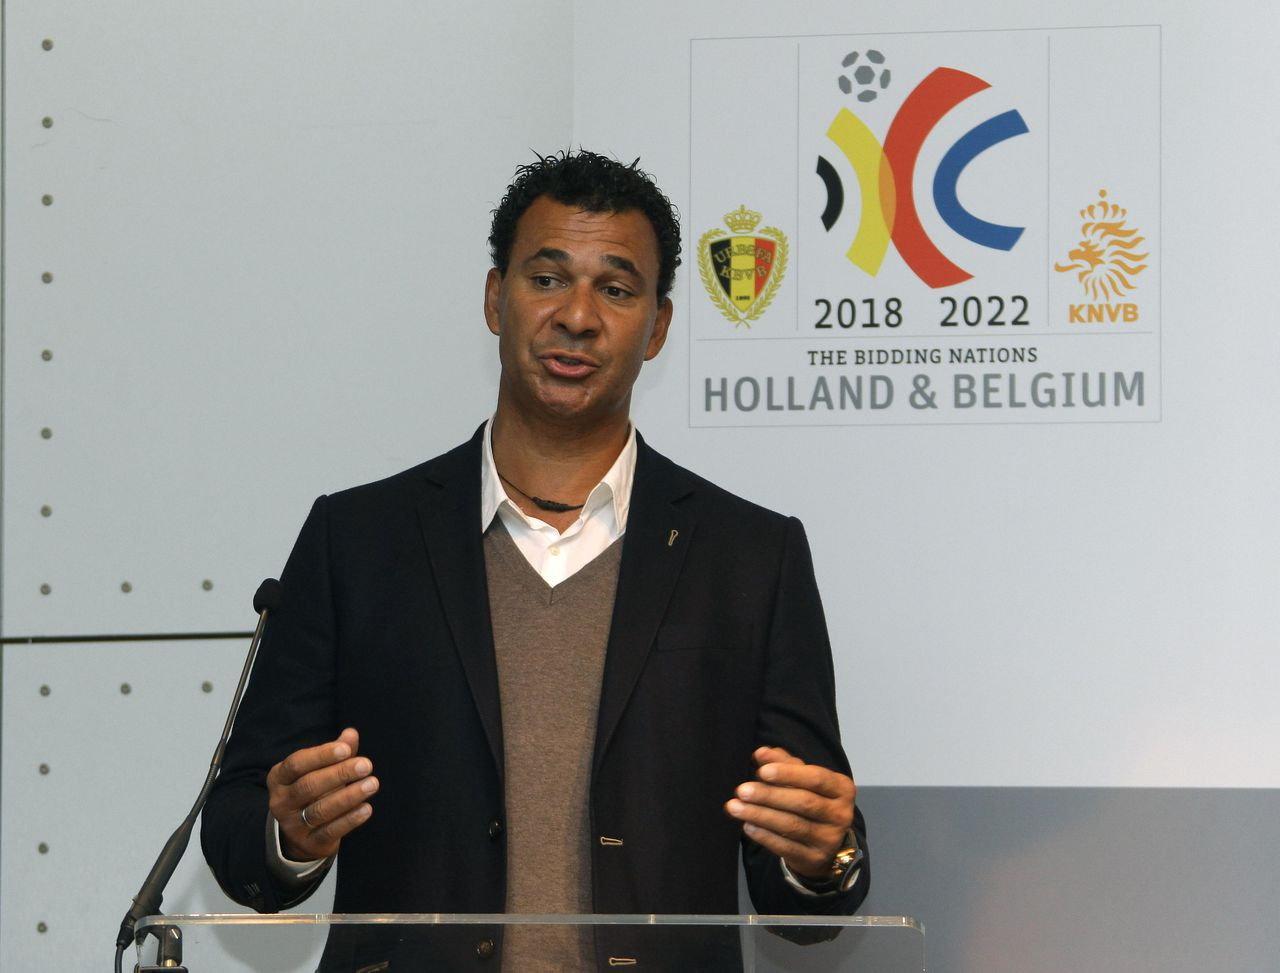 Ruud Gullit, president of The HollandBelgium Bid, during a press conference for the joint Belgian and Dutch bid for the 2018 World Cup, in Paris, Friday, Nov. 12, 2010. (AP Photo/Bob Edme)